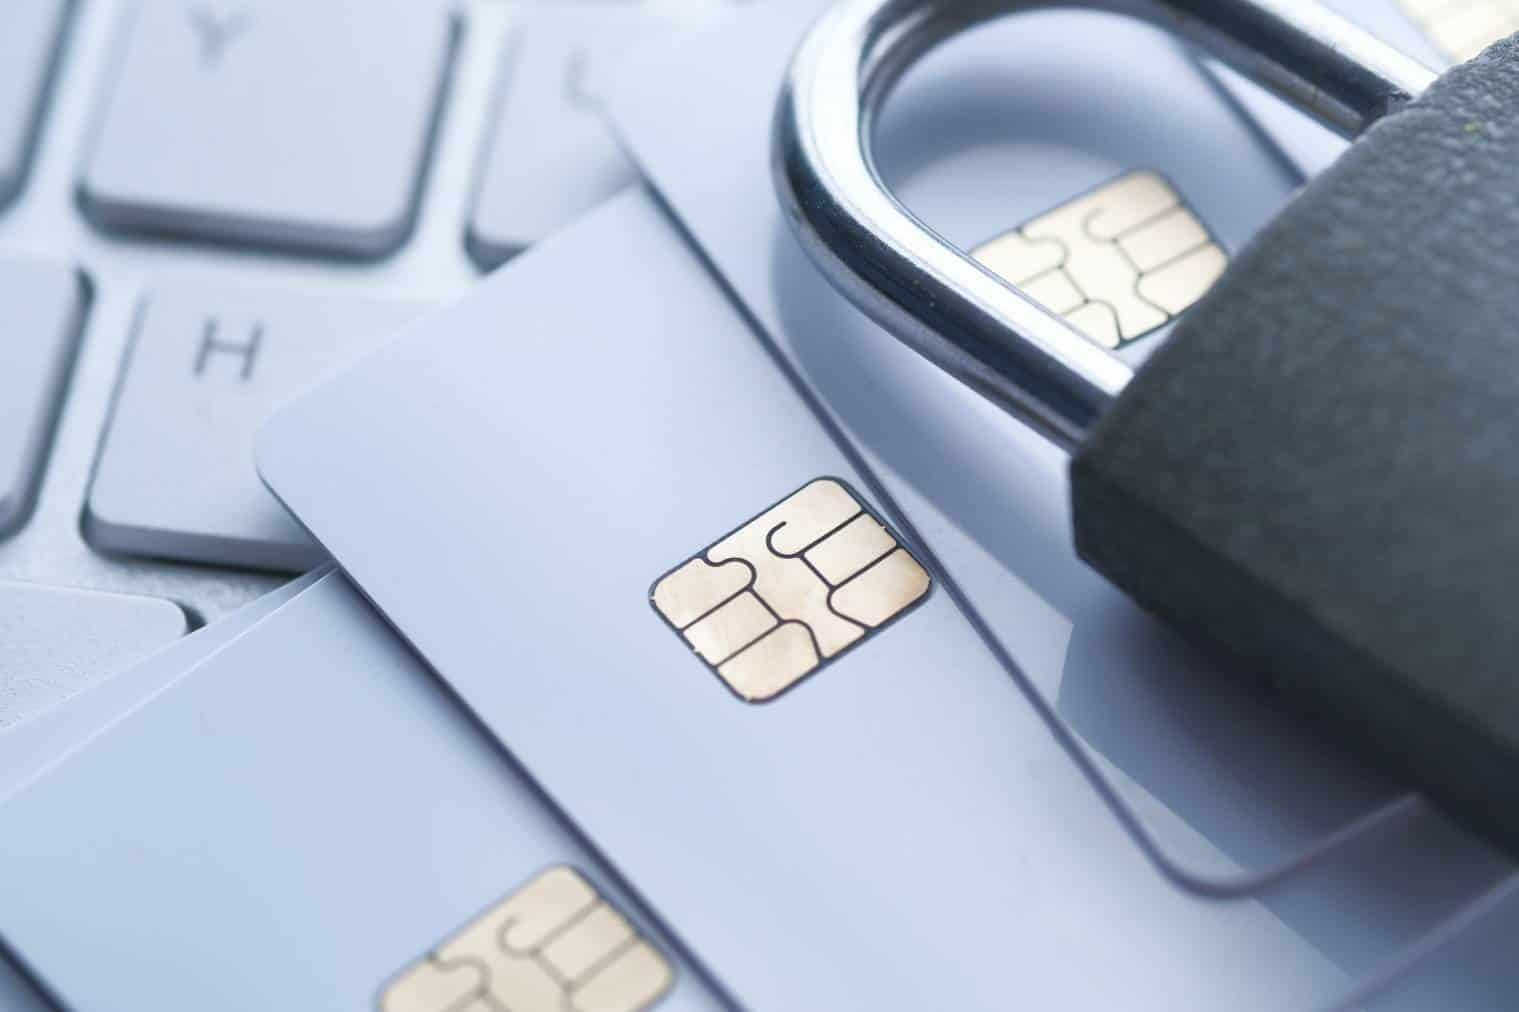 Thwarting payment and transfer fraud in companies